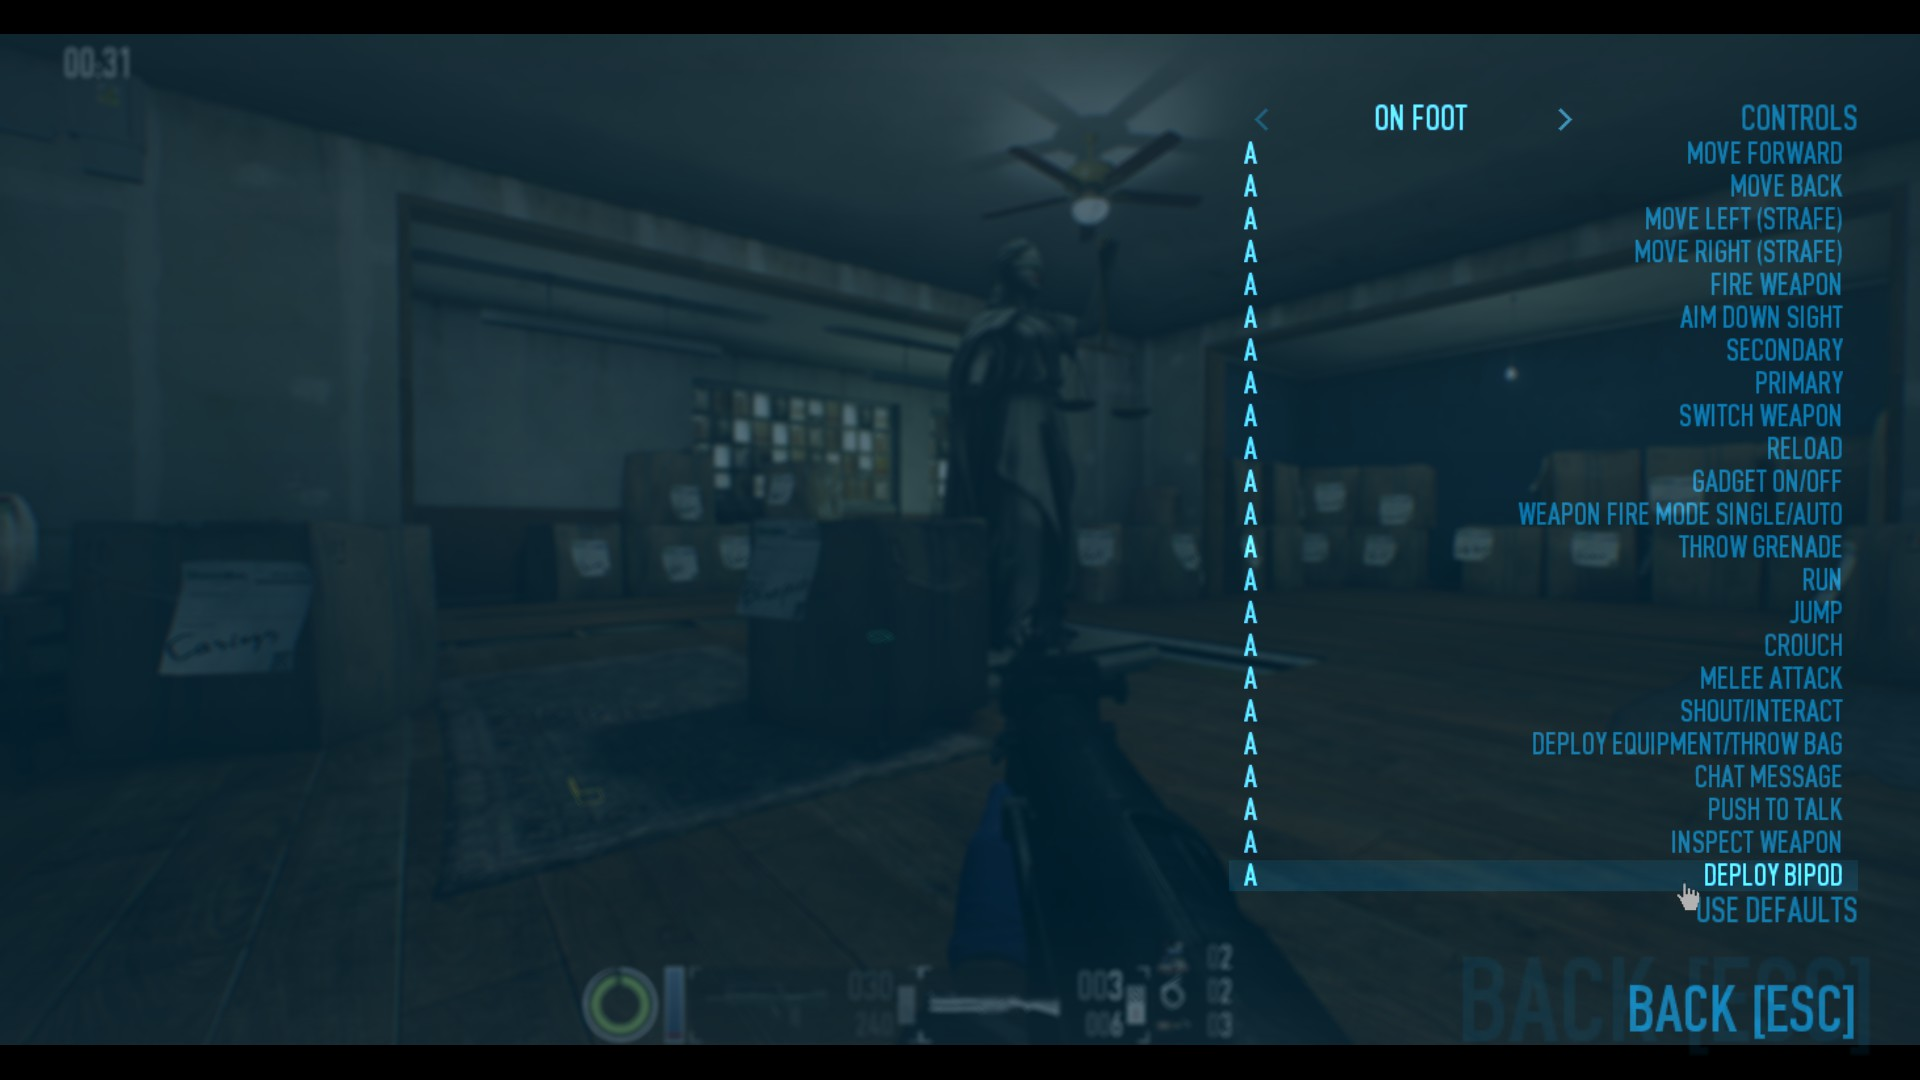 payday 2 settings file corrupt